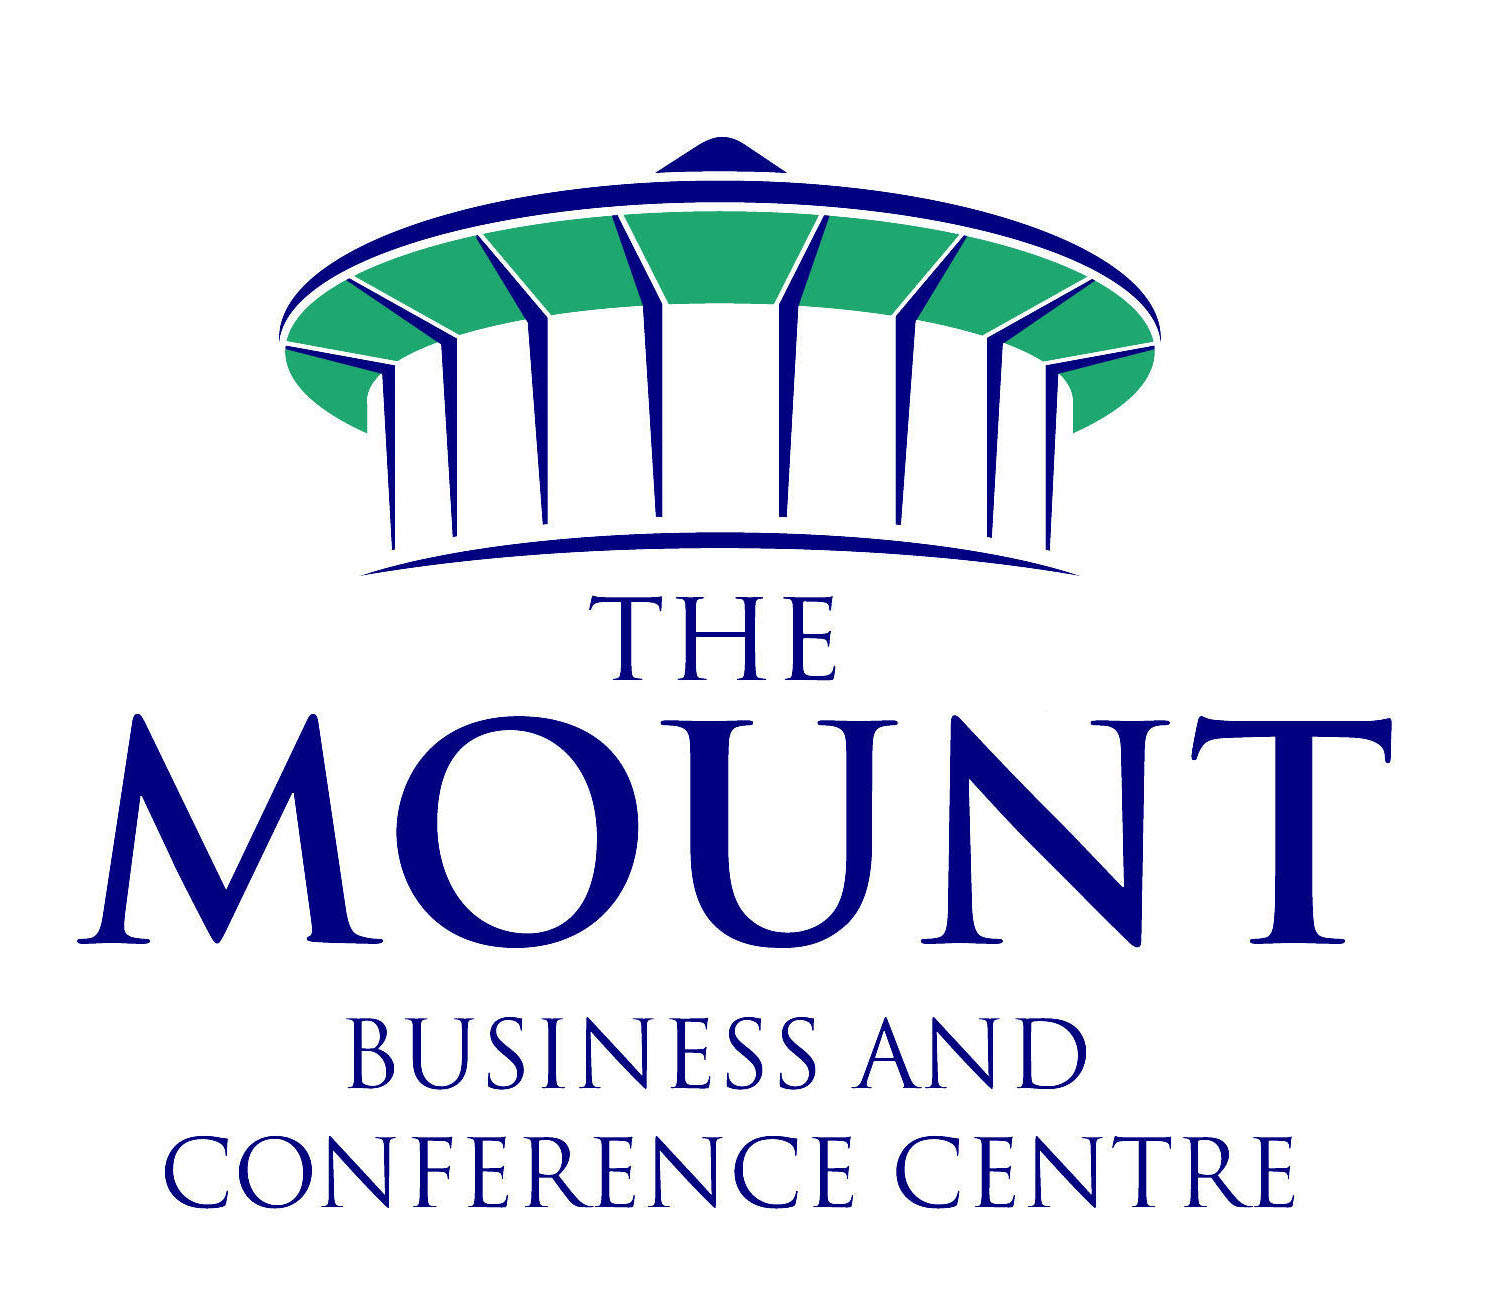 Catering Equipment Suppliers to The Mount Business and Conference Centre